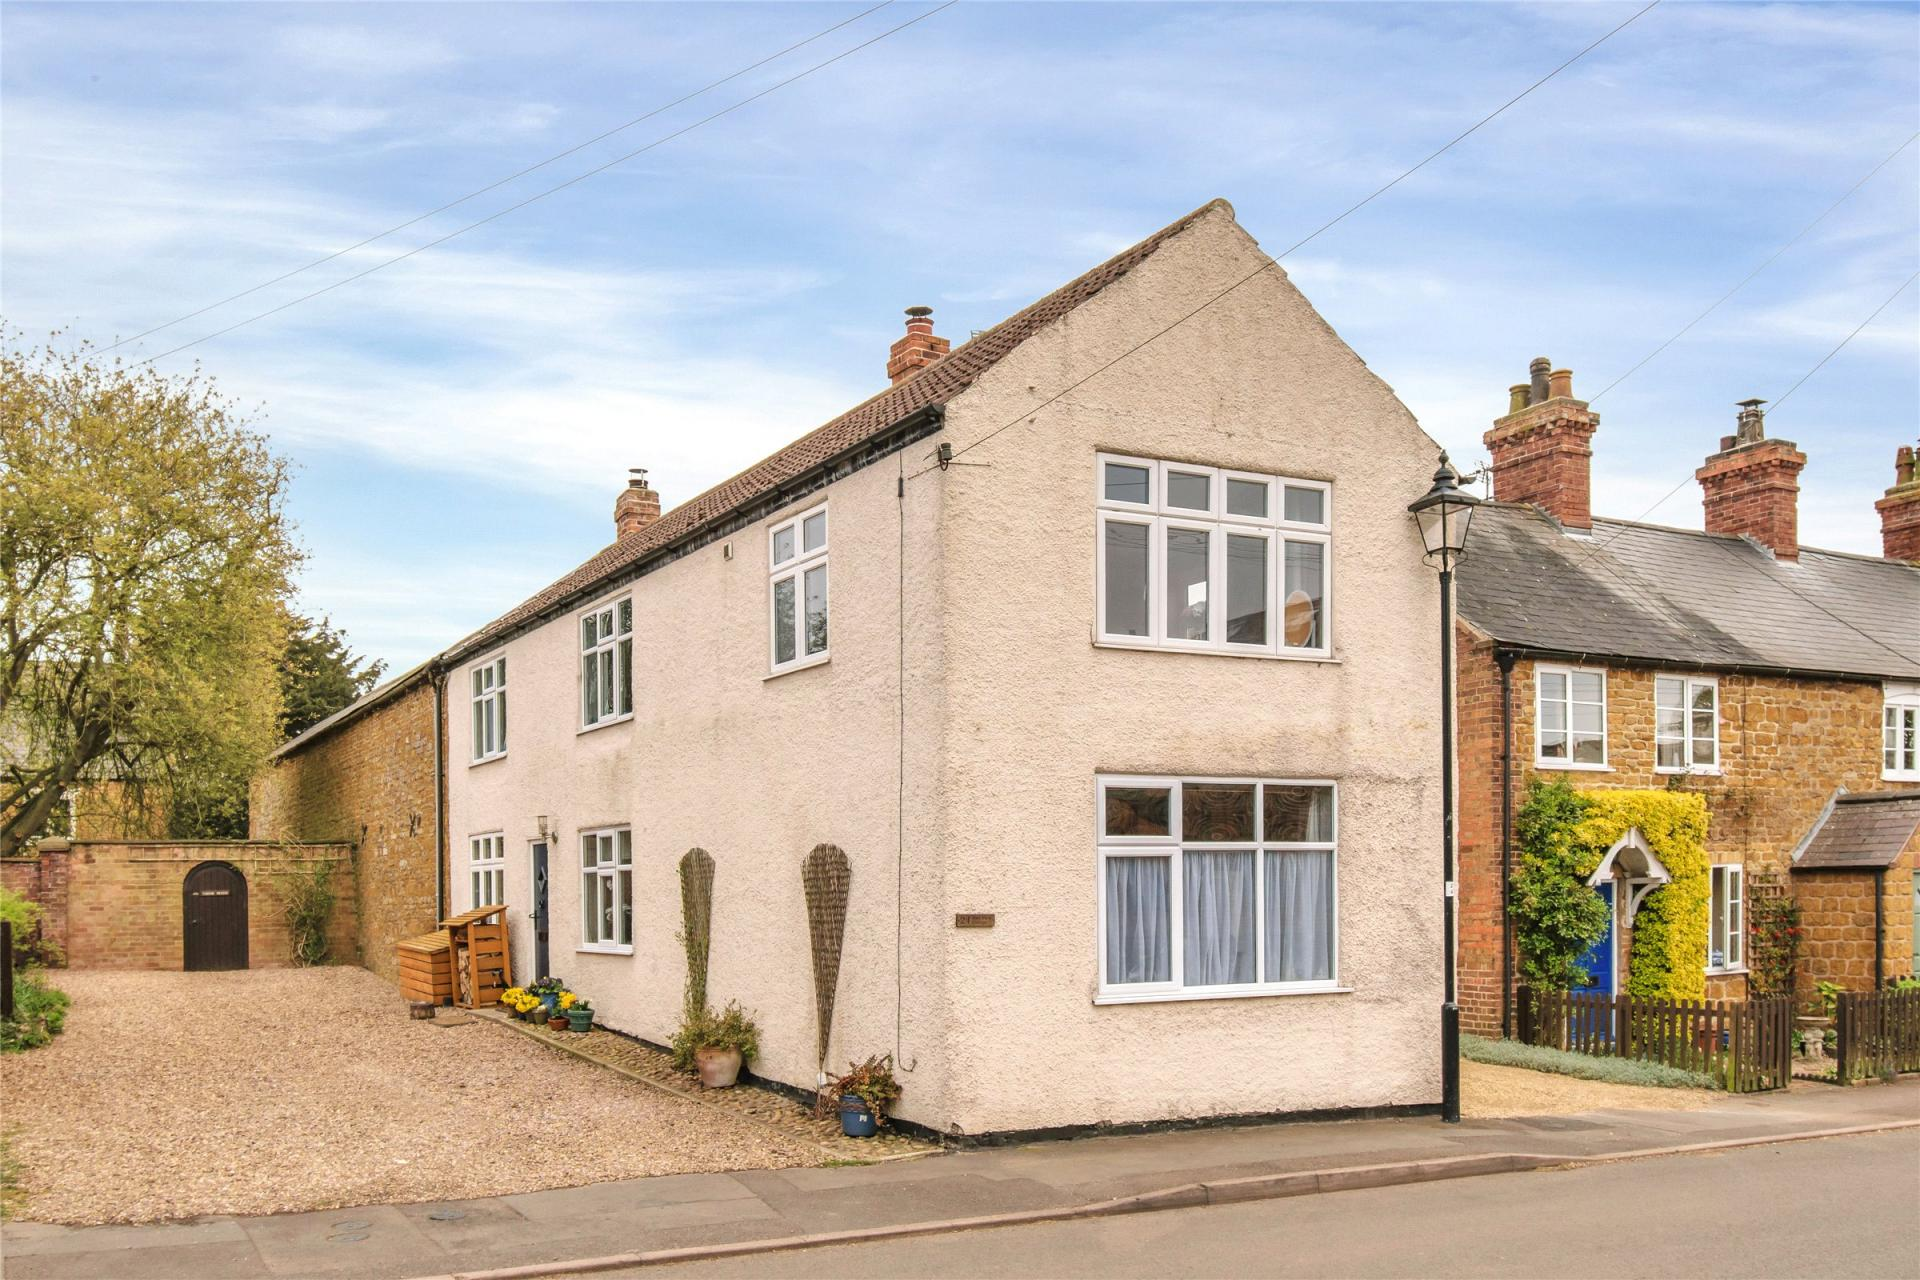 Bentons (Melton Mowbray) character house for sale